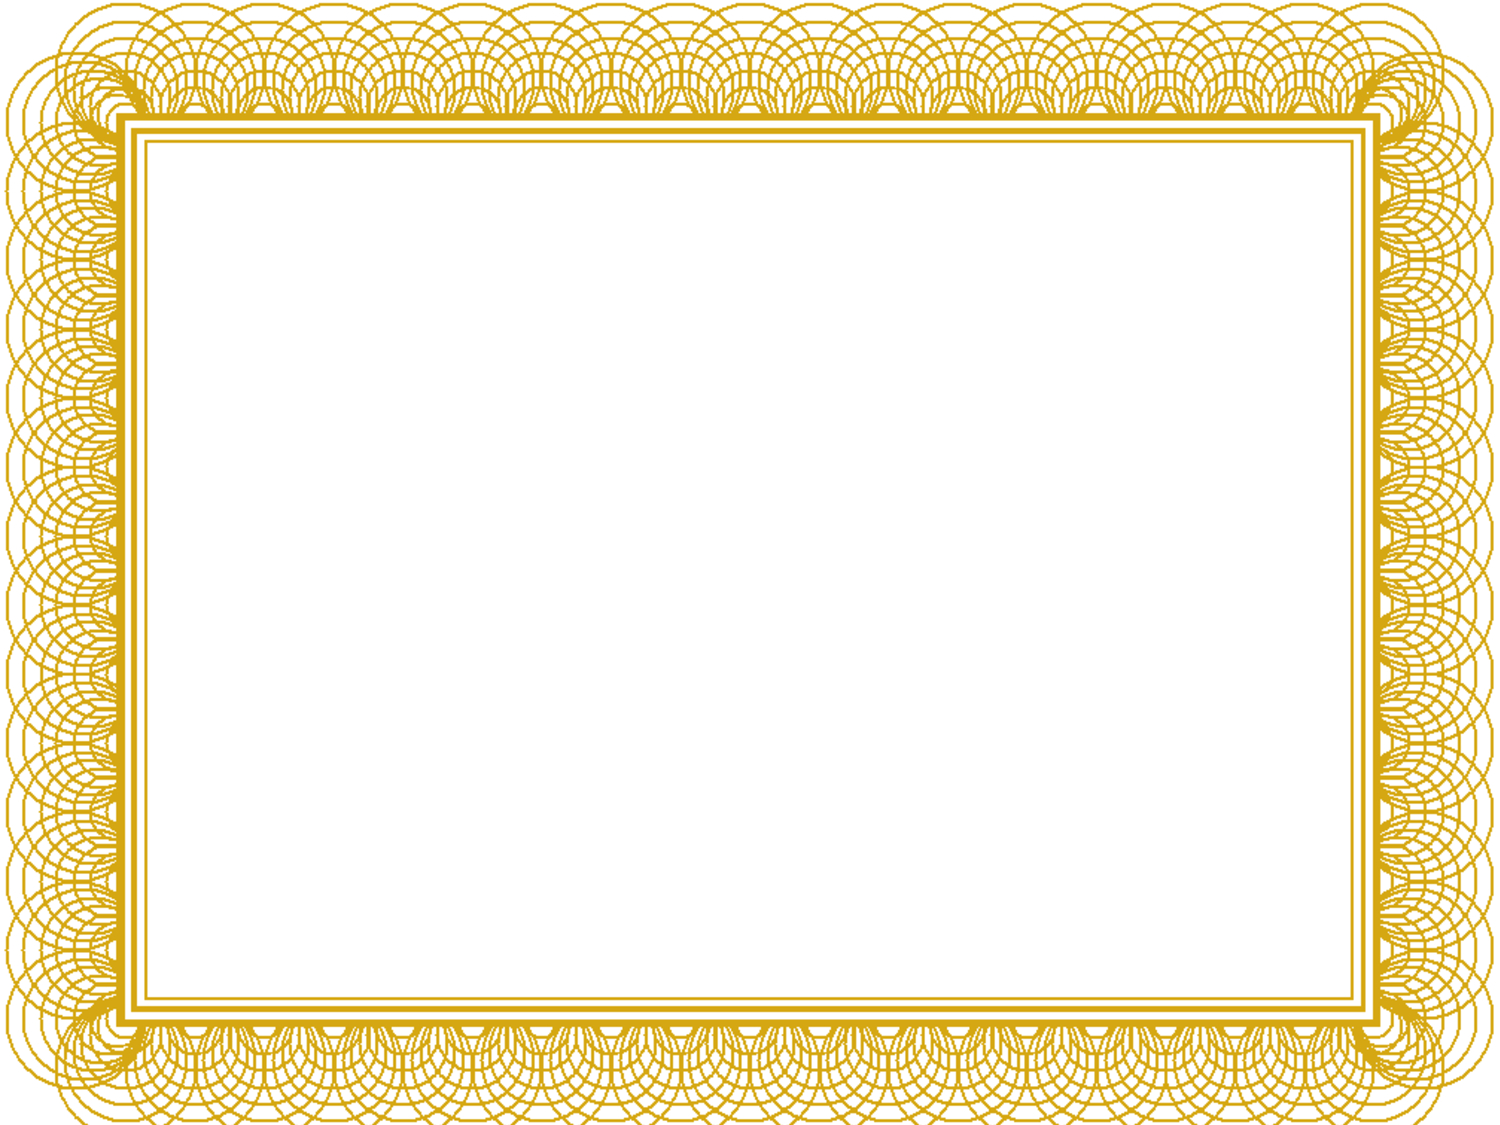 Best 60+ Certificate Backgrounds On Hipwallpaper Regarding Award Certificate Border Template